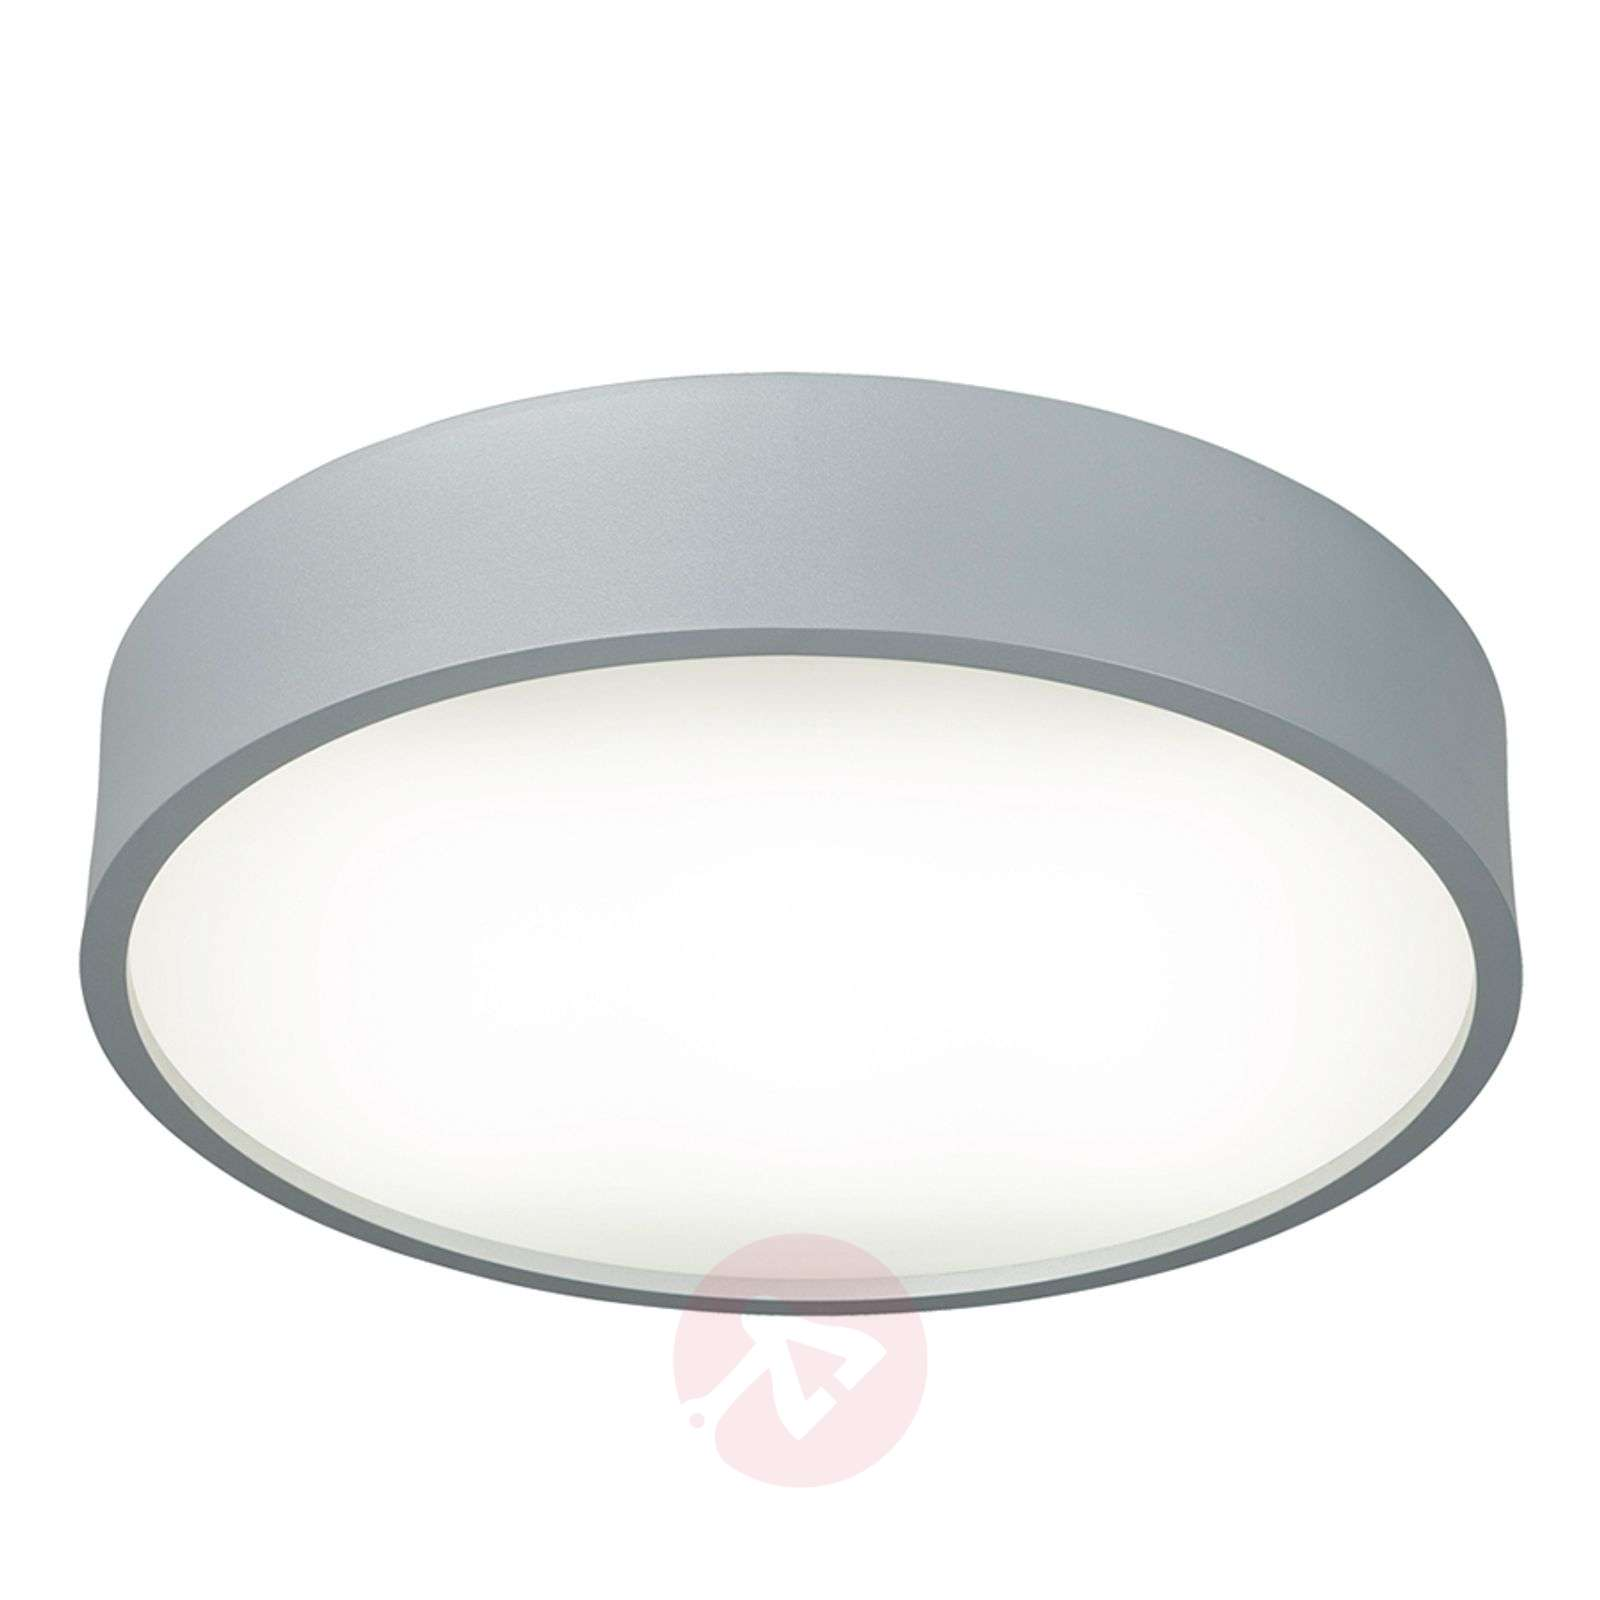 Silver grey ceiling light module s445 led lights silver grey ceiling light module s445 led 6040174 01 aloadofball Gallery